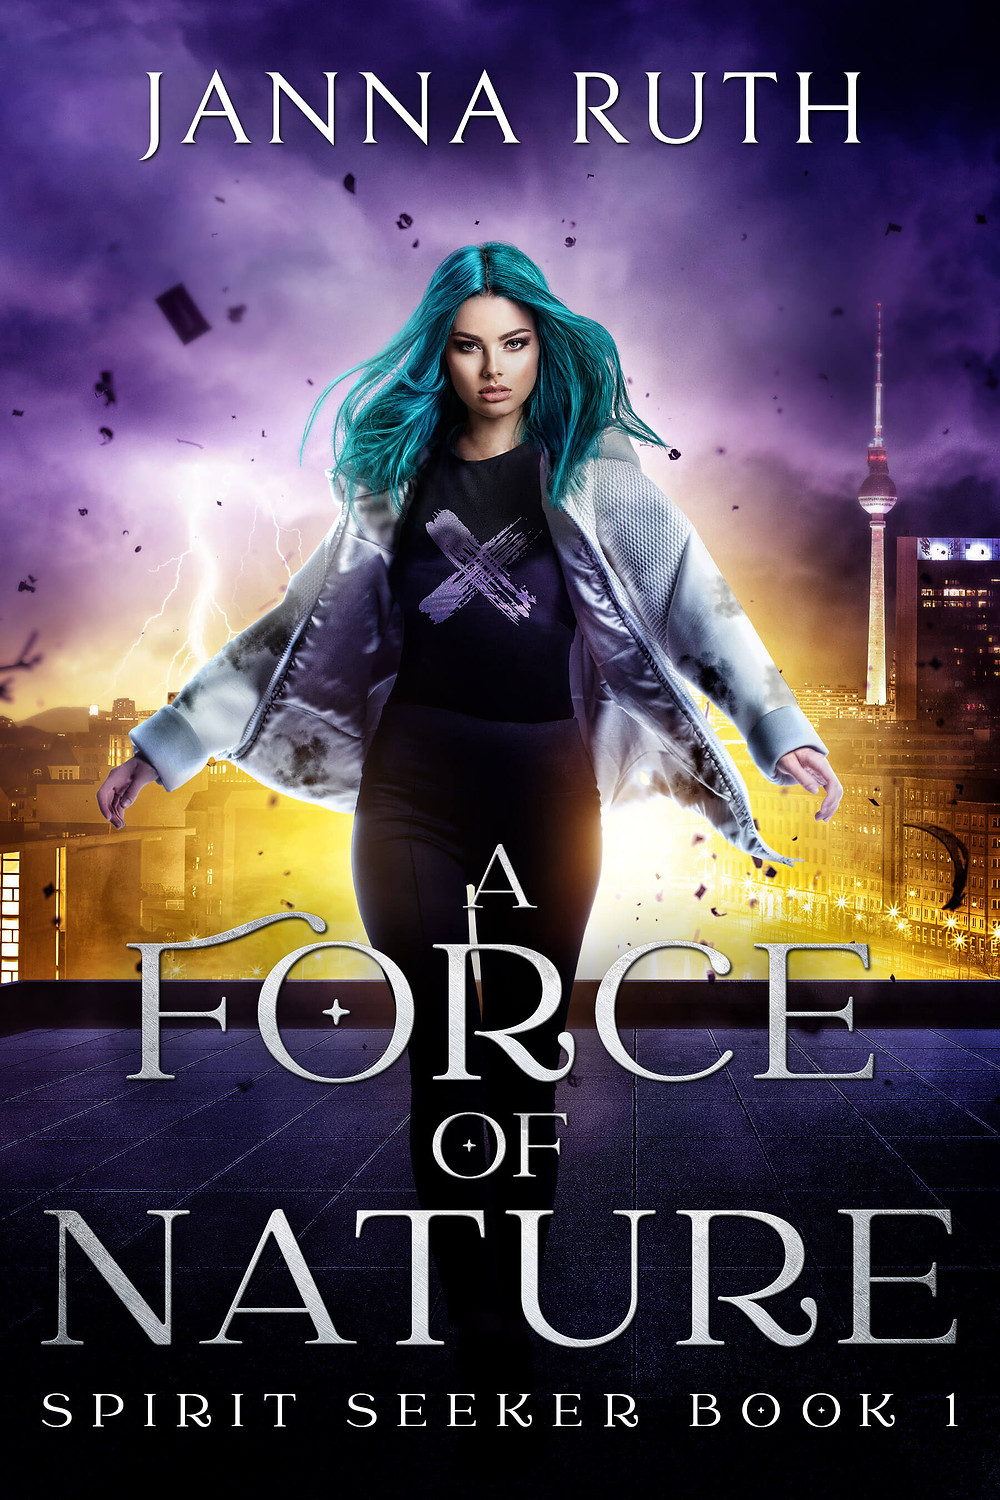 Cover of urban fantasy novel Spirit Seeker Book 1: A Force of Nature by Janna Ruth